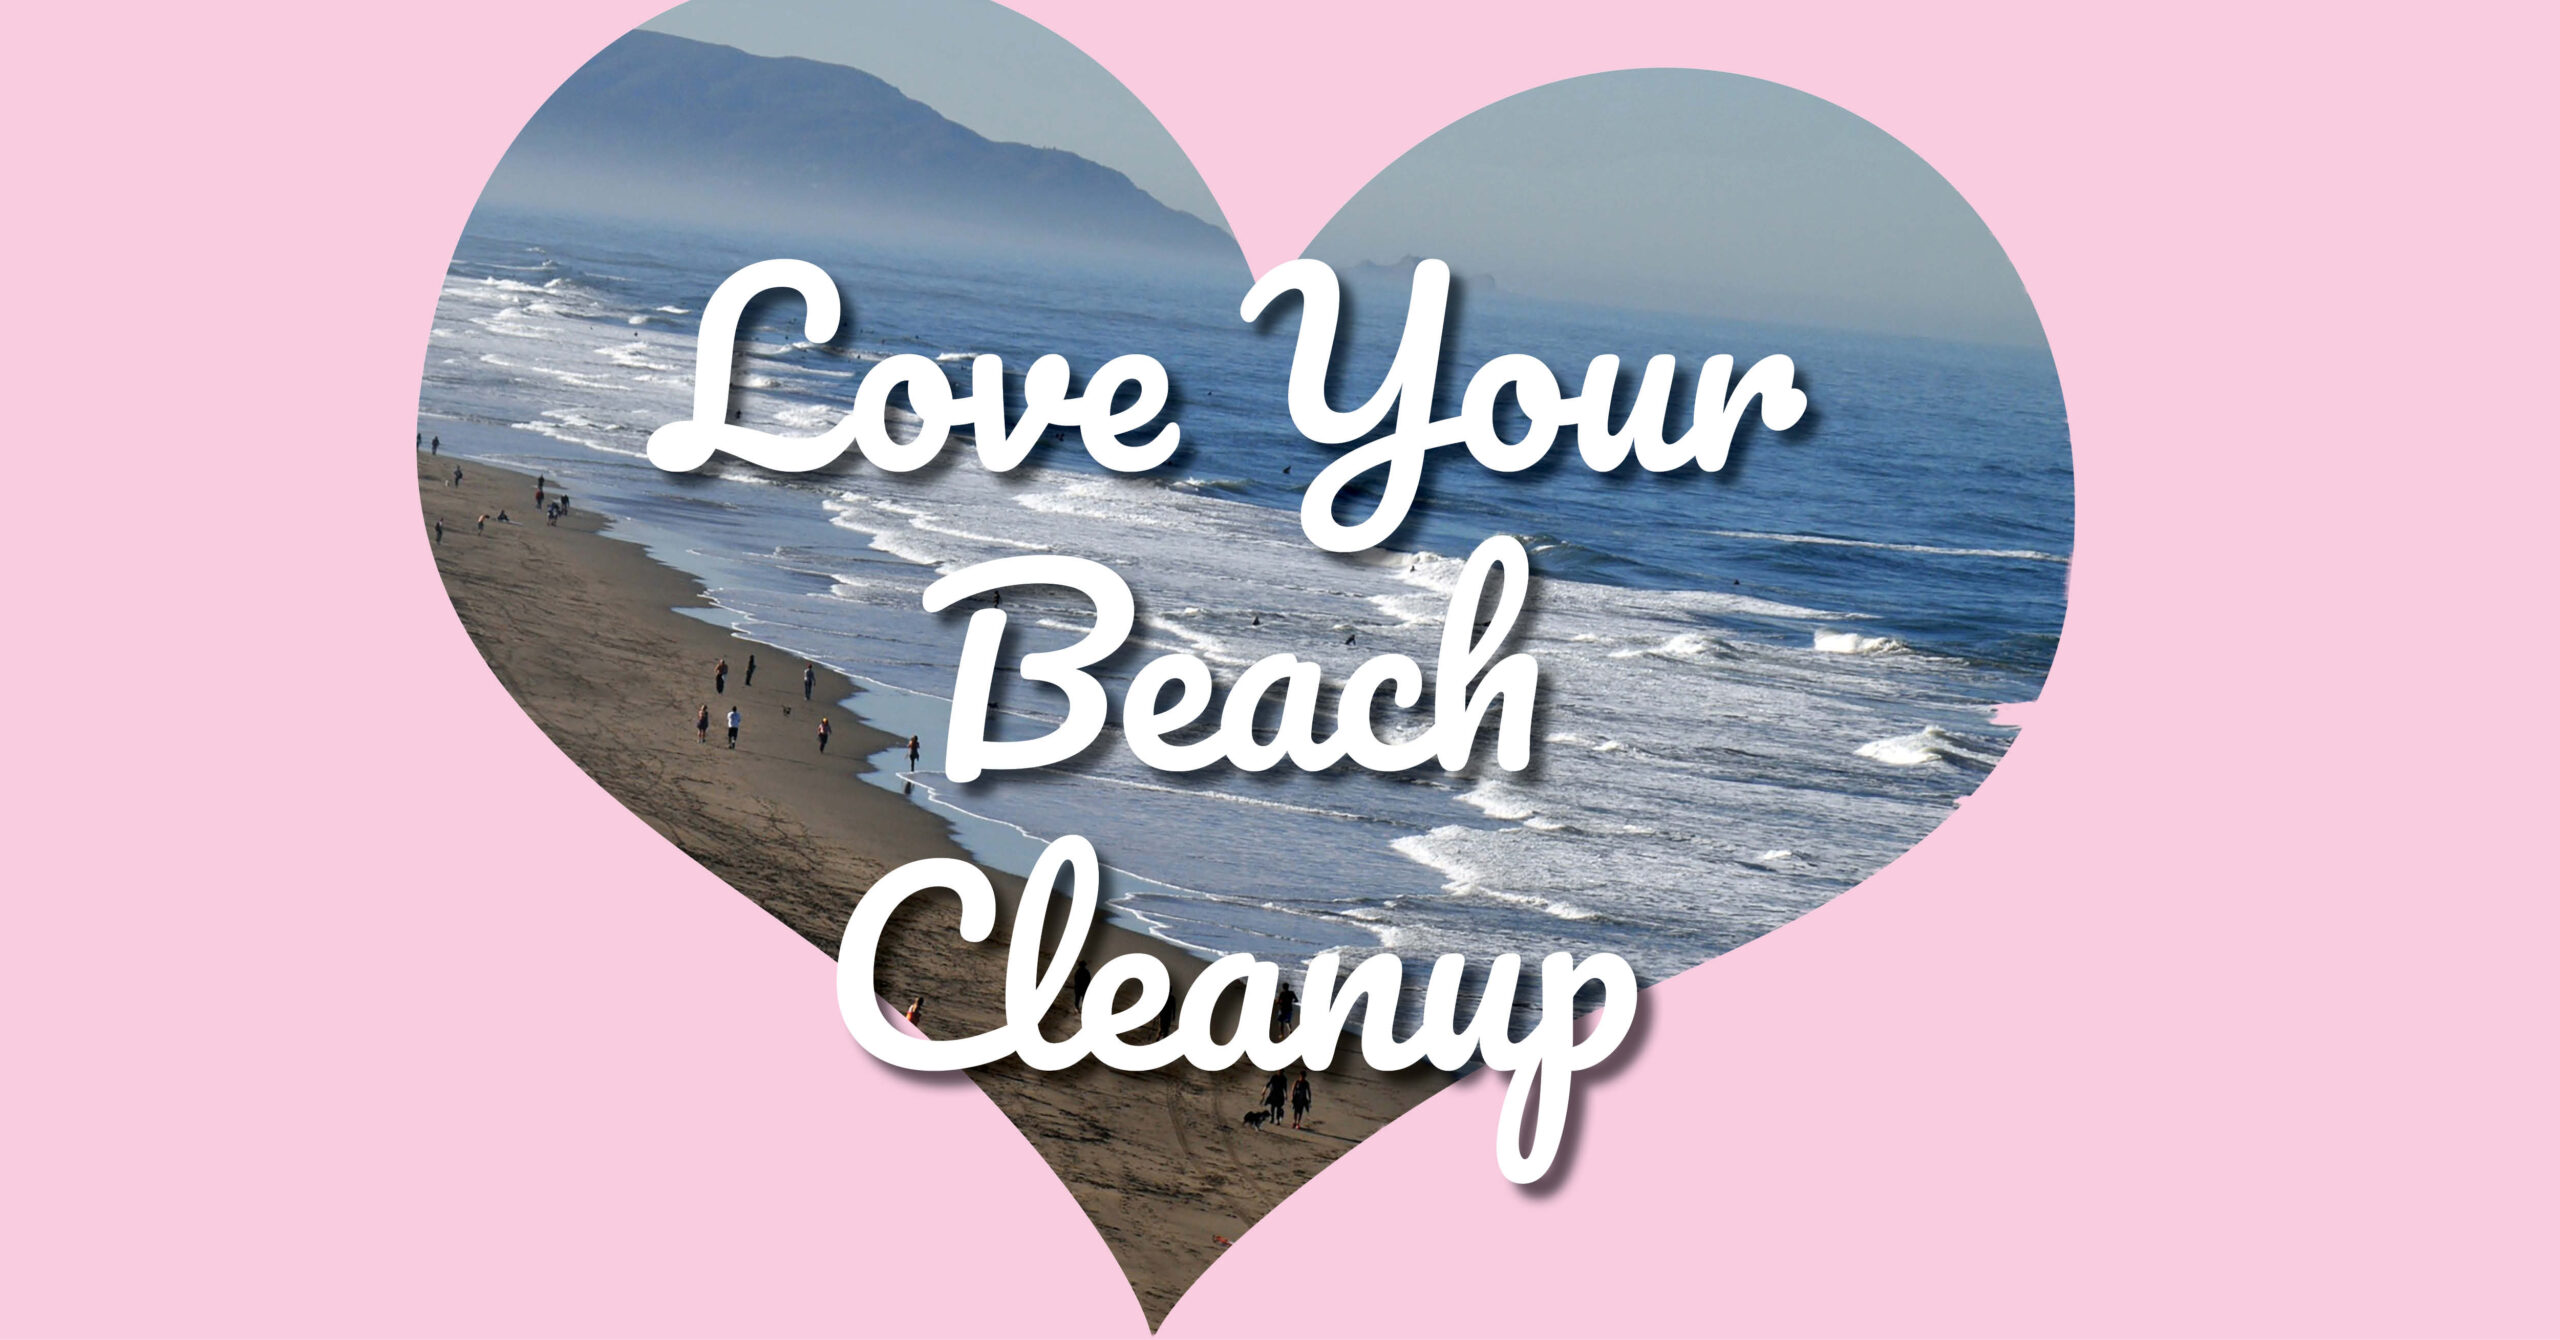 Turtle Island Restoration Network to Host Ocean Beach Cleanup in S.F. on Valentine's Day